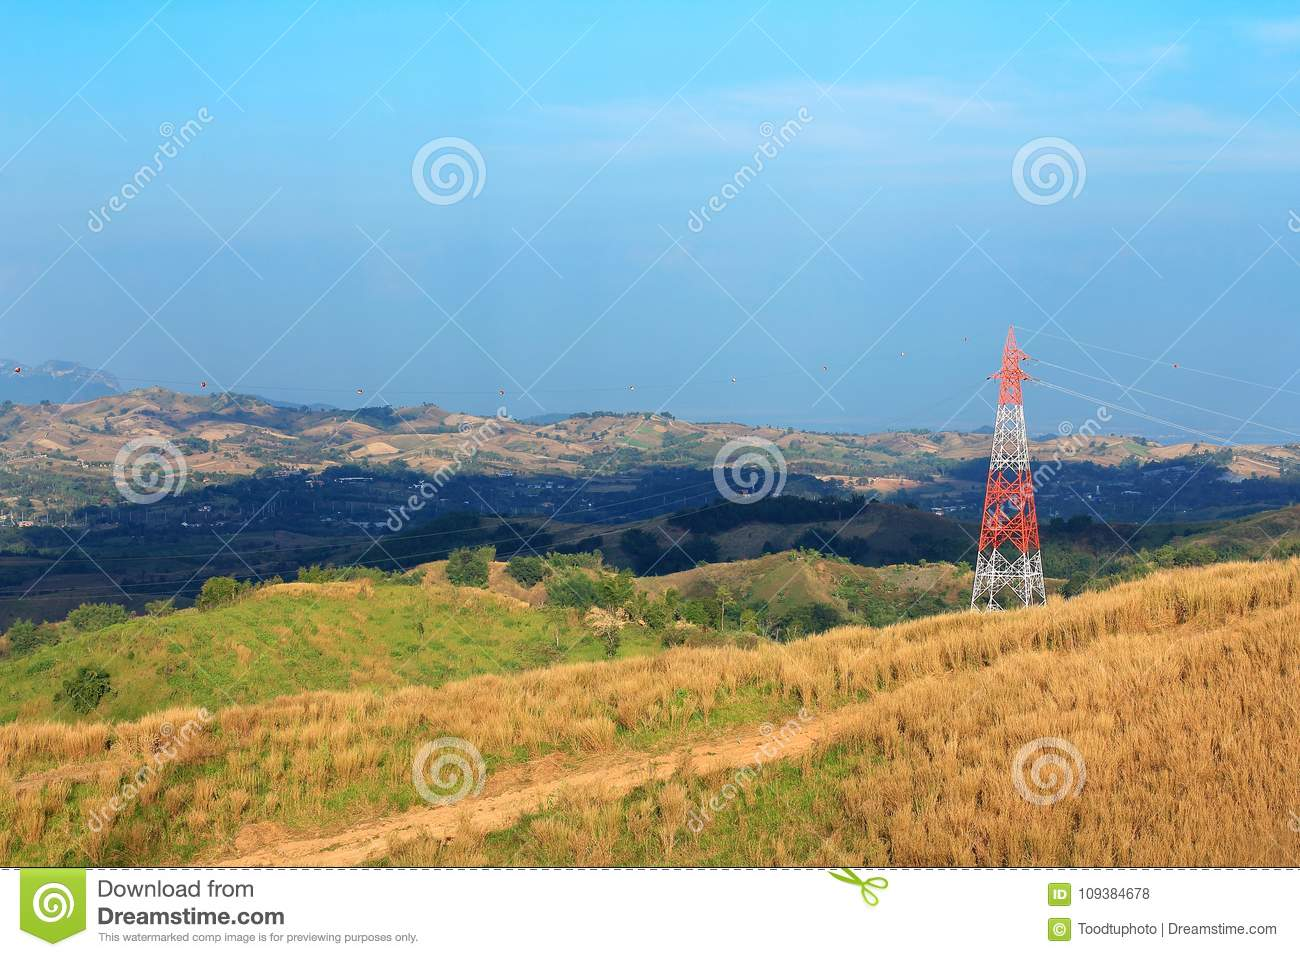 High-voltage tower on mountain with meadow,electrical poles and cables in rural areas